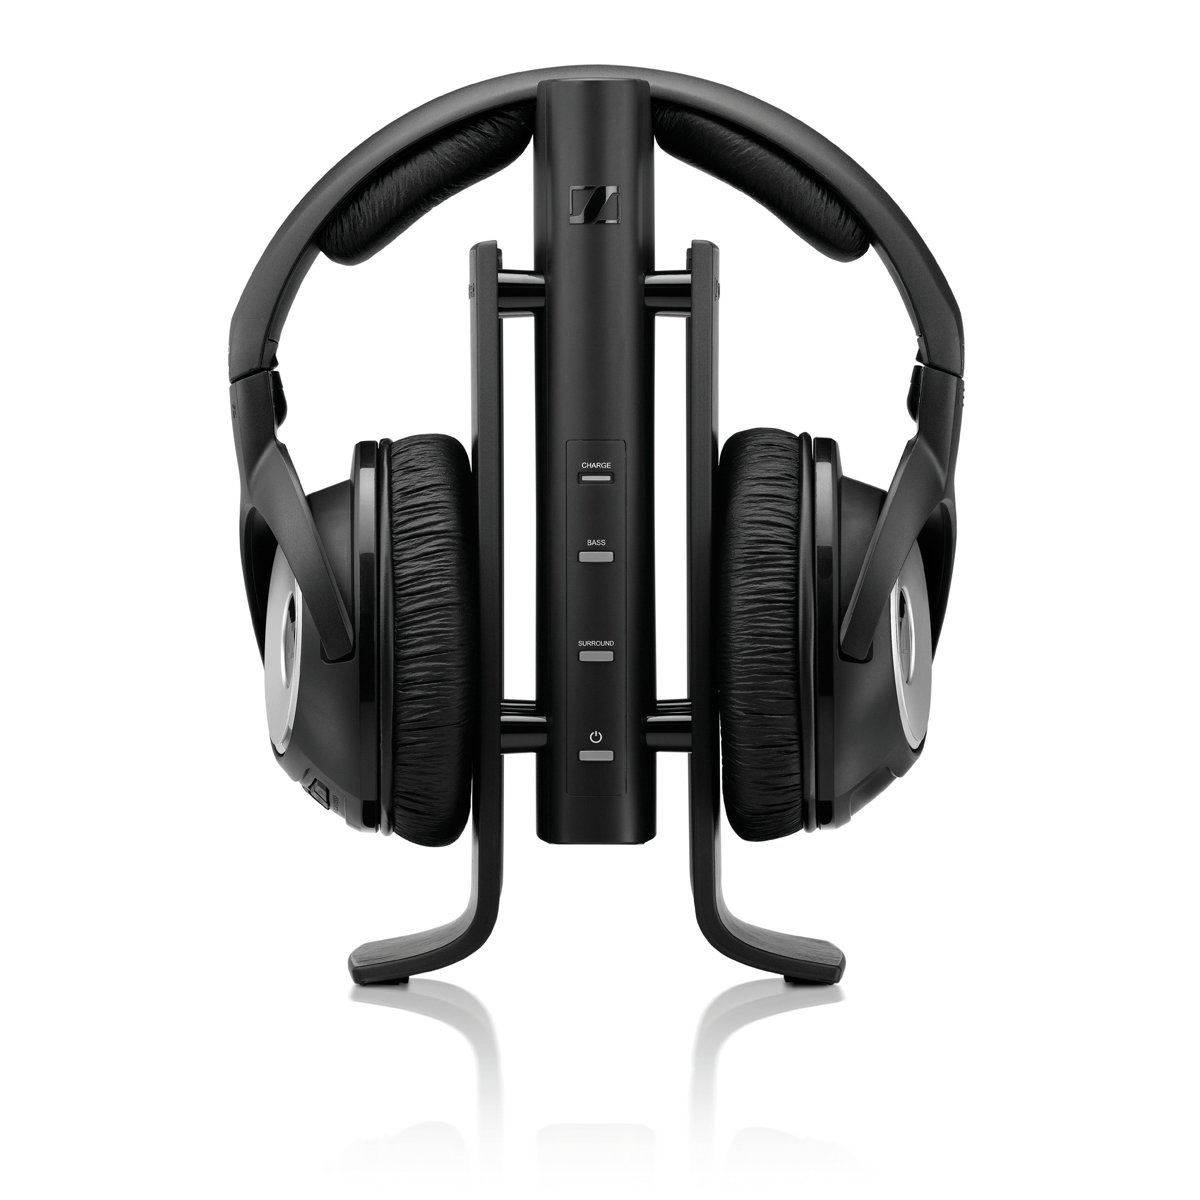 Sennheiser RS 170 Digital Wireless Headphones